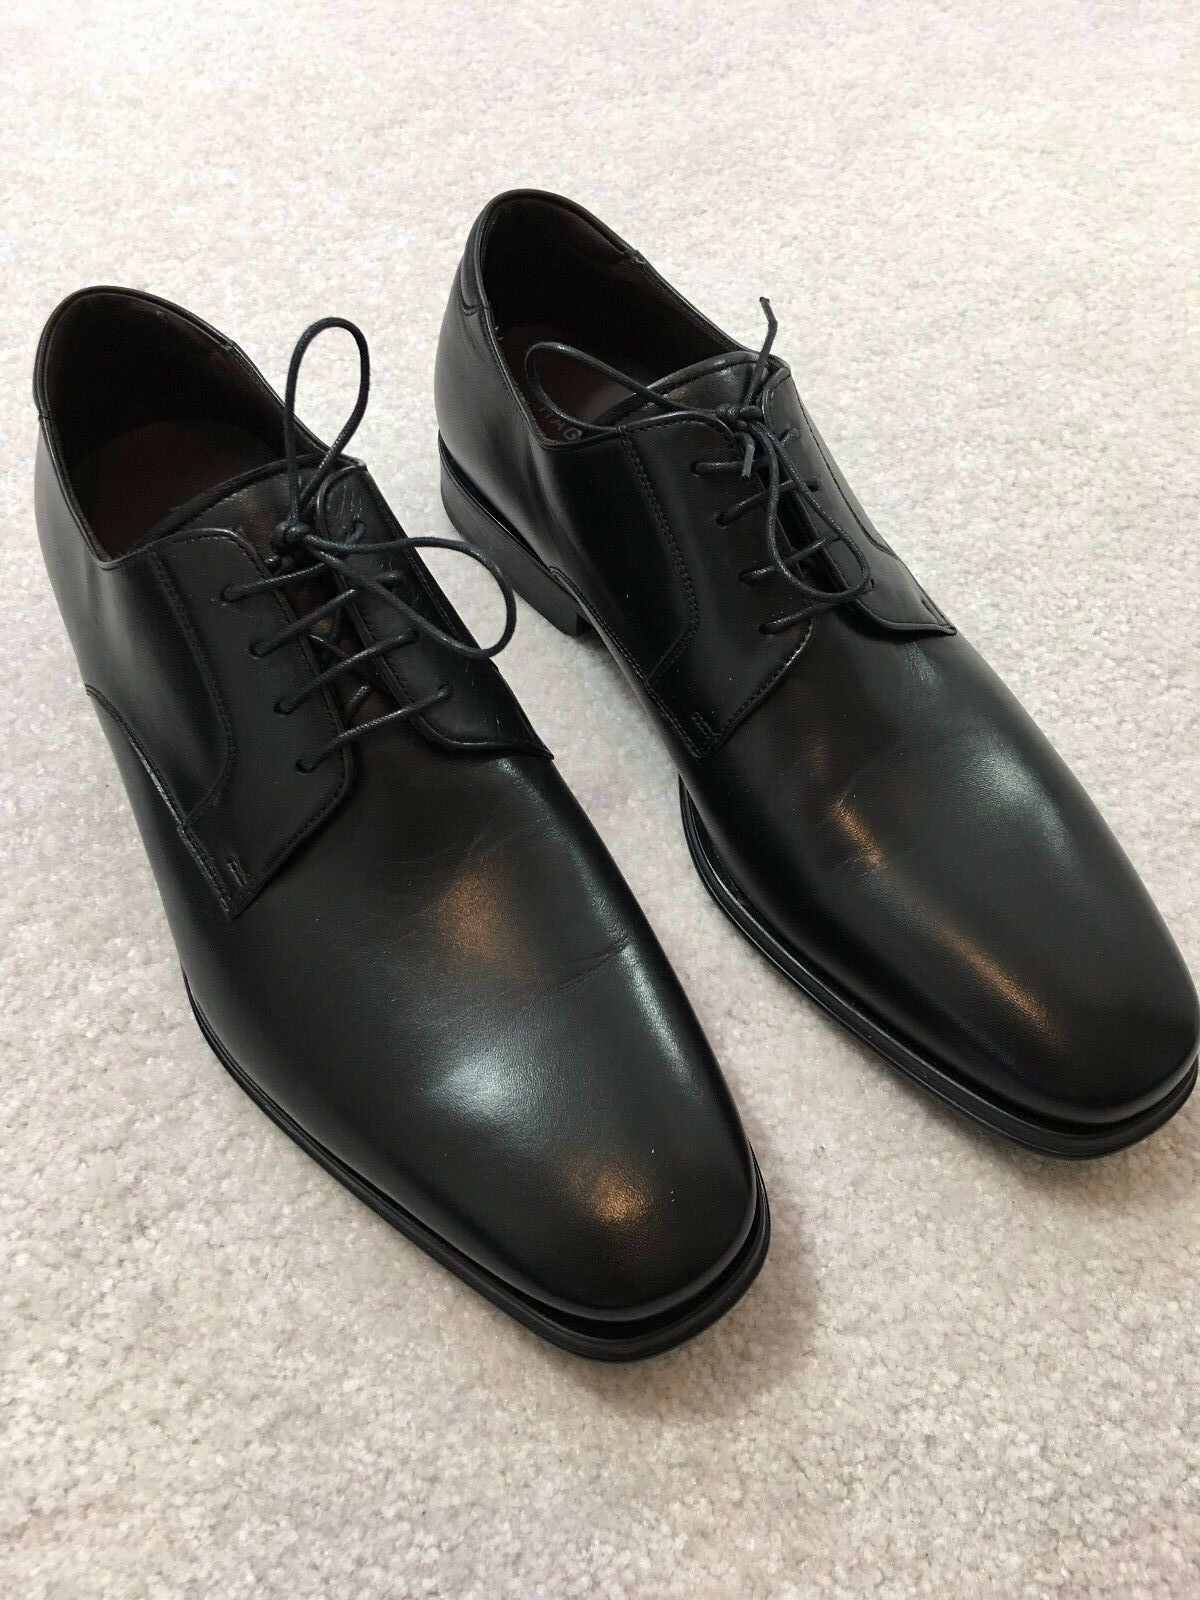 350 MAGNANNI SEVE LEATHER OXFORD DRESS SHOES, BLACK, 10M, ITALY